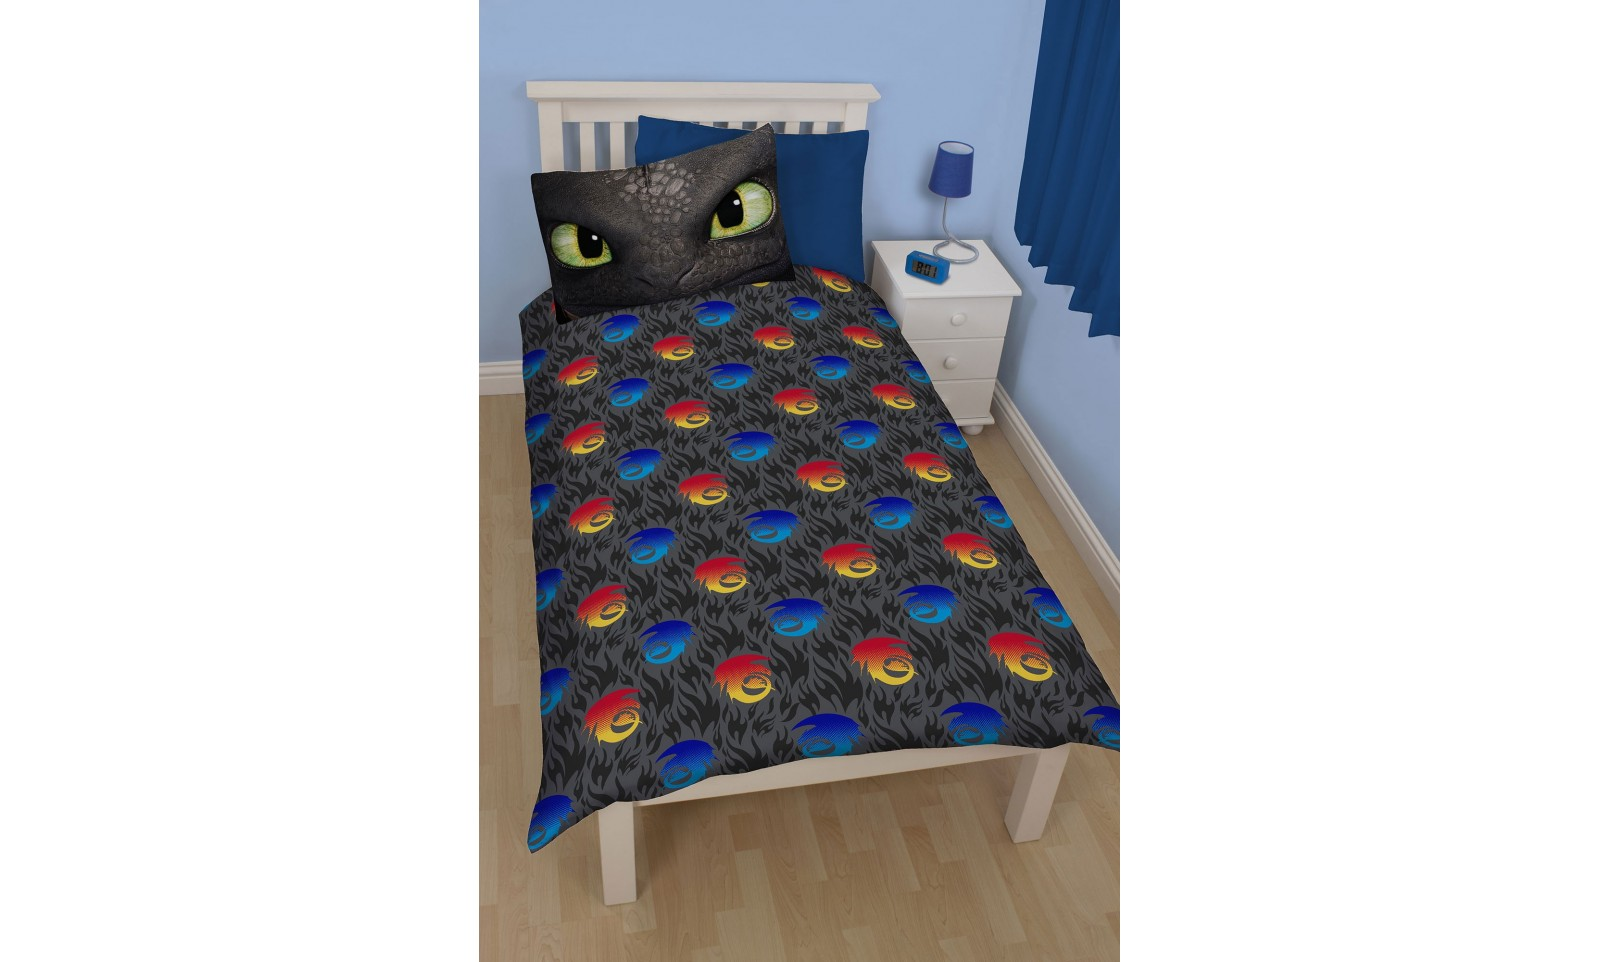 How to train your dragon toothless reversible duvet set pillow how to train your dragon toothless reversible duvet set pillow case duvet cover ccuart Gallery